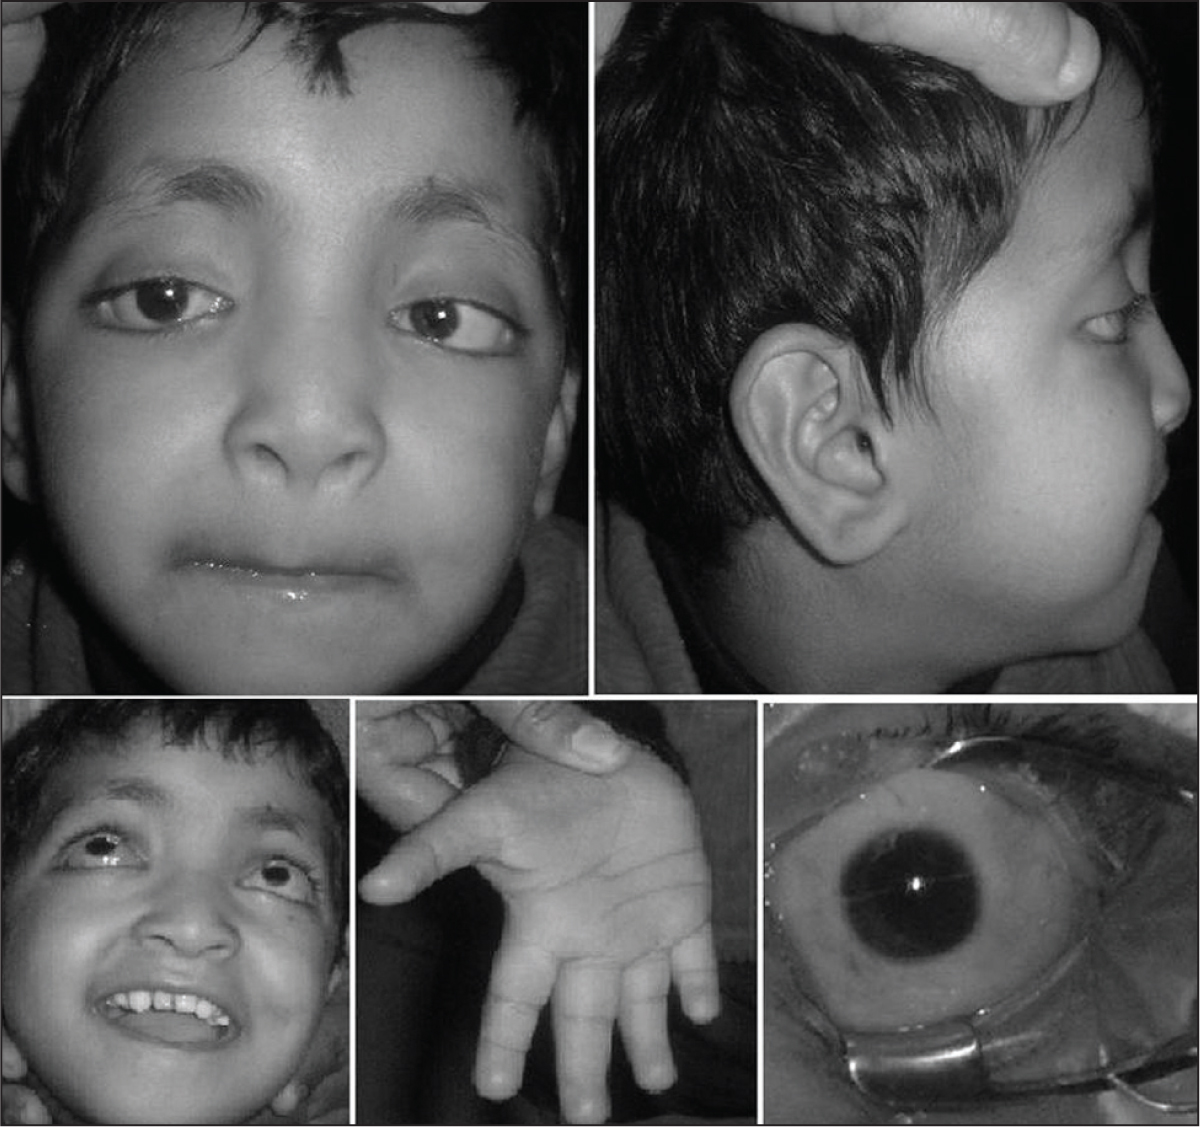 (A) Loss of Lateral Eyebrows, Mild Congenital Ptosis with Absence of Eyelid Fold, Euryblepharon, and Telecanthus Palpebralis. (B) Prominent Earlobes and Depressed Nasal Bridge. (C) Irregularly Placed and Shaped Dentition. (D) Prominent Finger Fetal Pad of Fat with Absent Distal Phalangeal Crease of the Ring Finger. (E) Multiple Nummular Corneal Opacities and Esotropia.